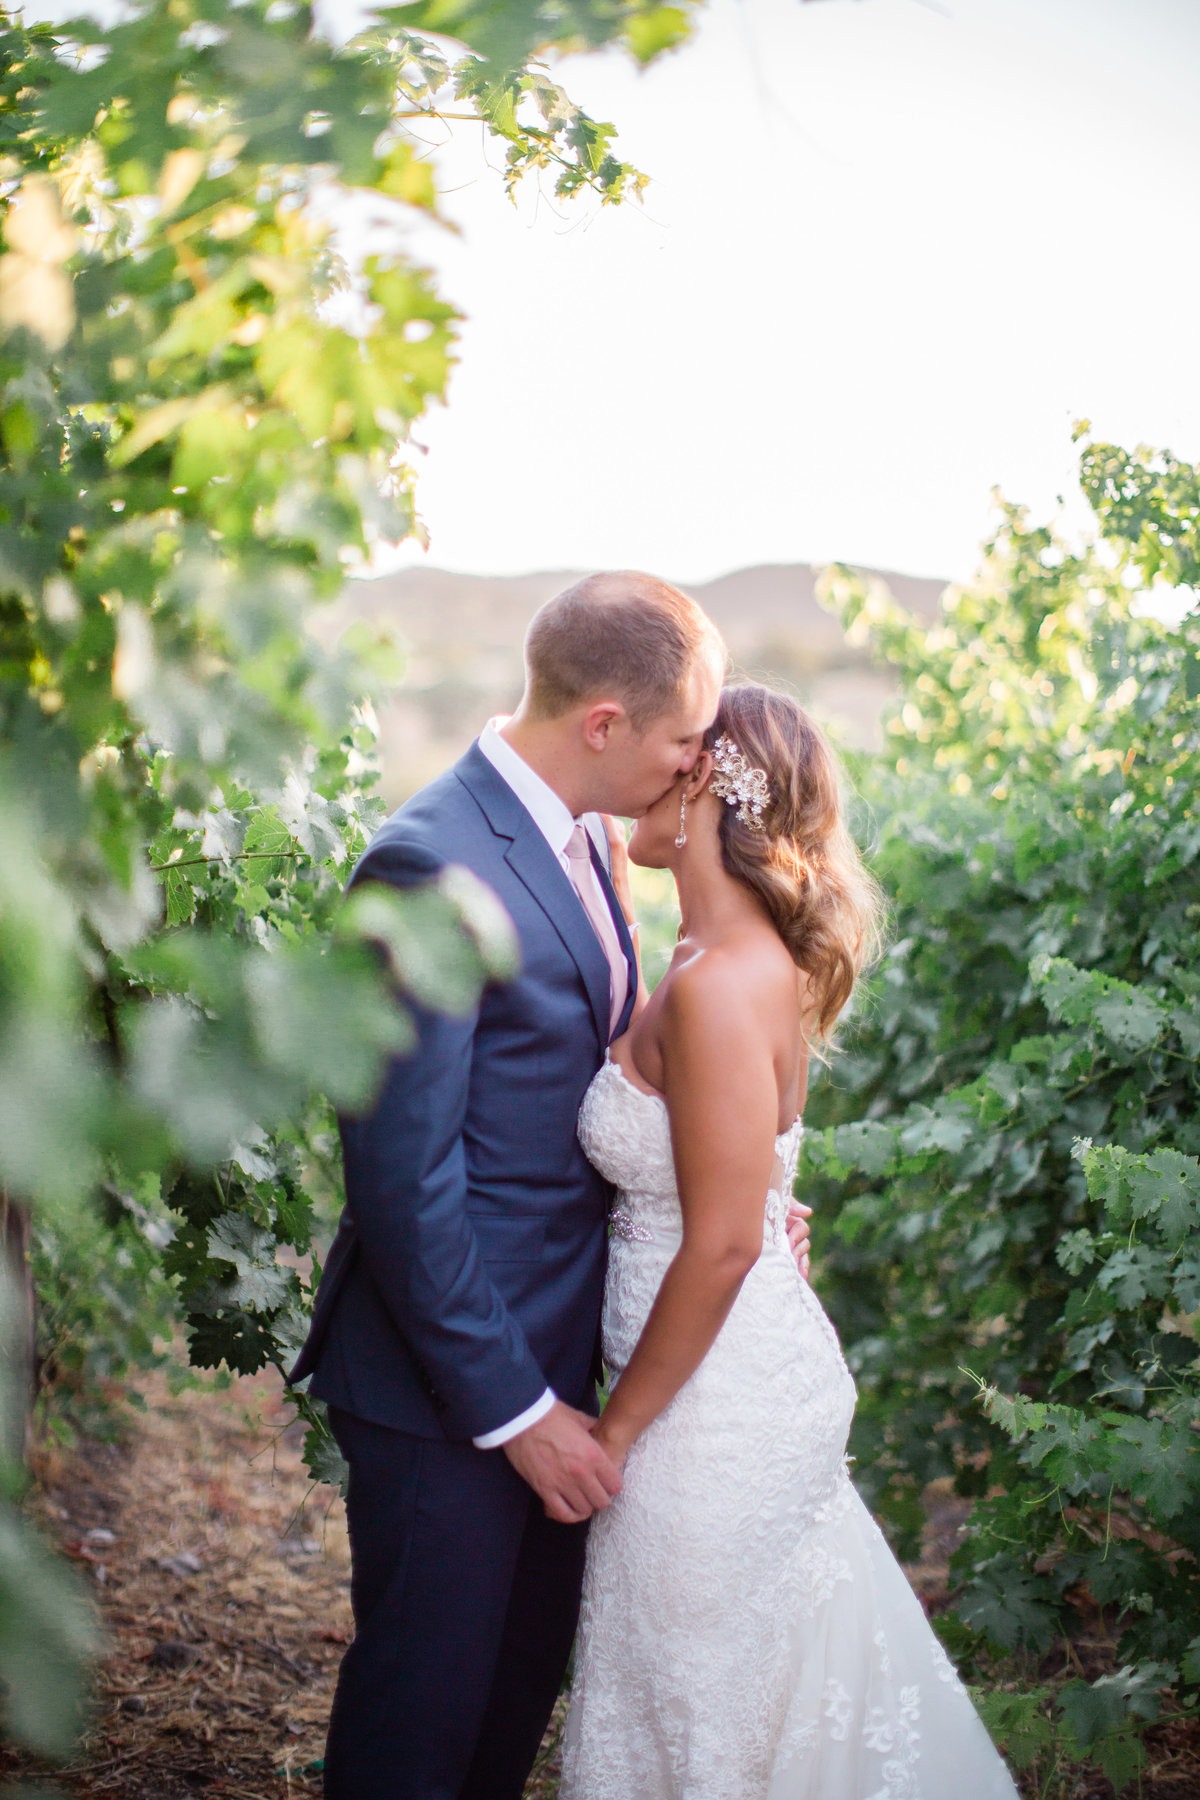 Jenna & Andrew's Oyster Ridge Wedding | Paso Robles Wedding Photographer | Katie Schoepflin Photography534